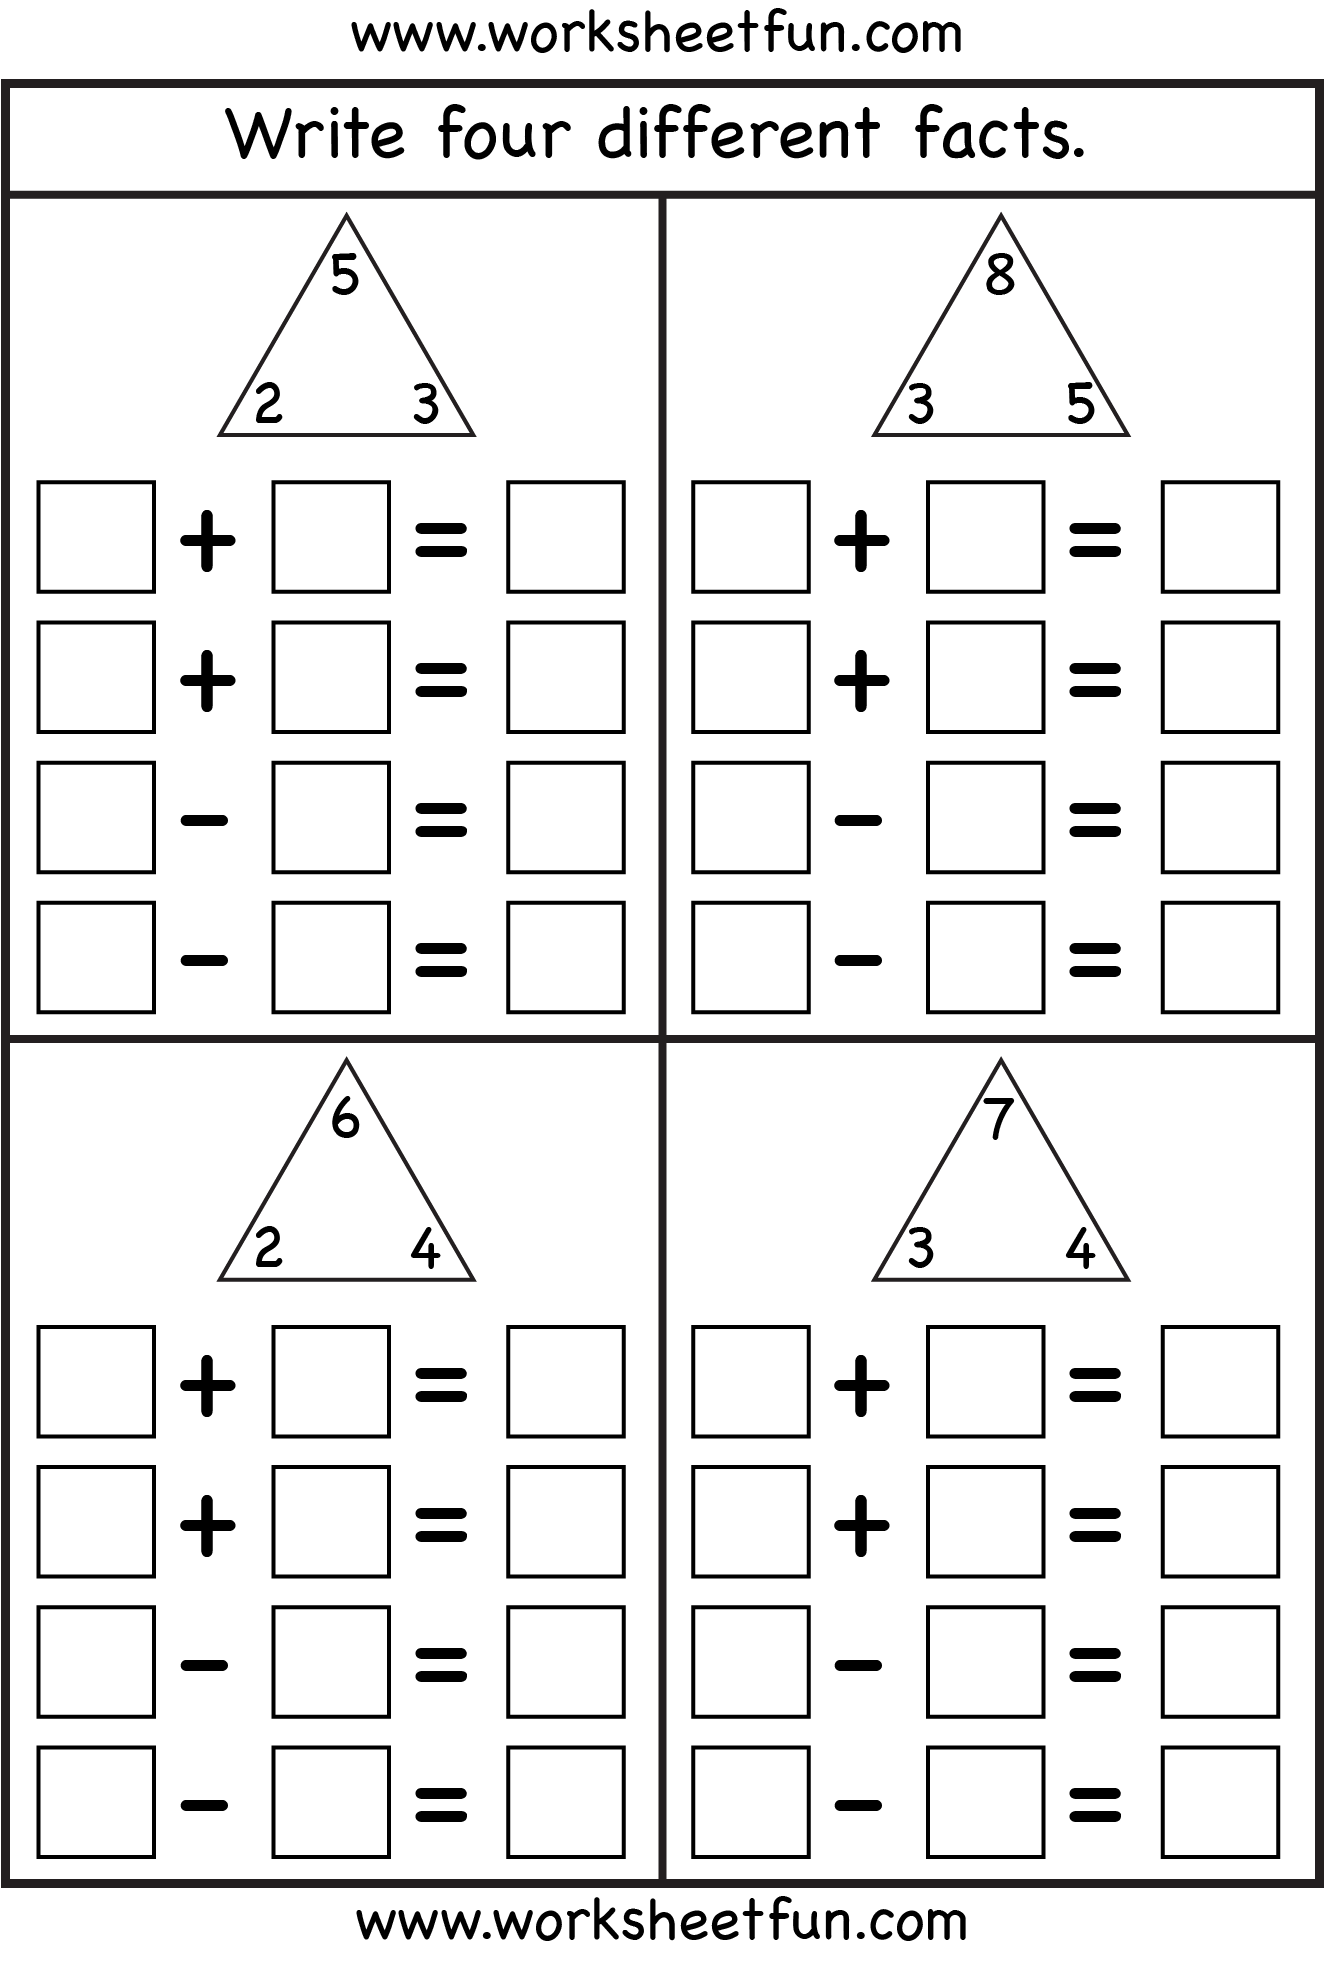 math worksheet : 1000 images about fact families on pinterest  fact families  : Math Fact Family Worksheets